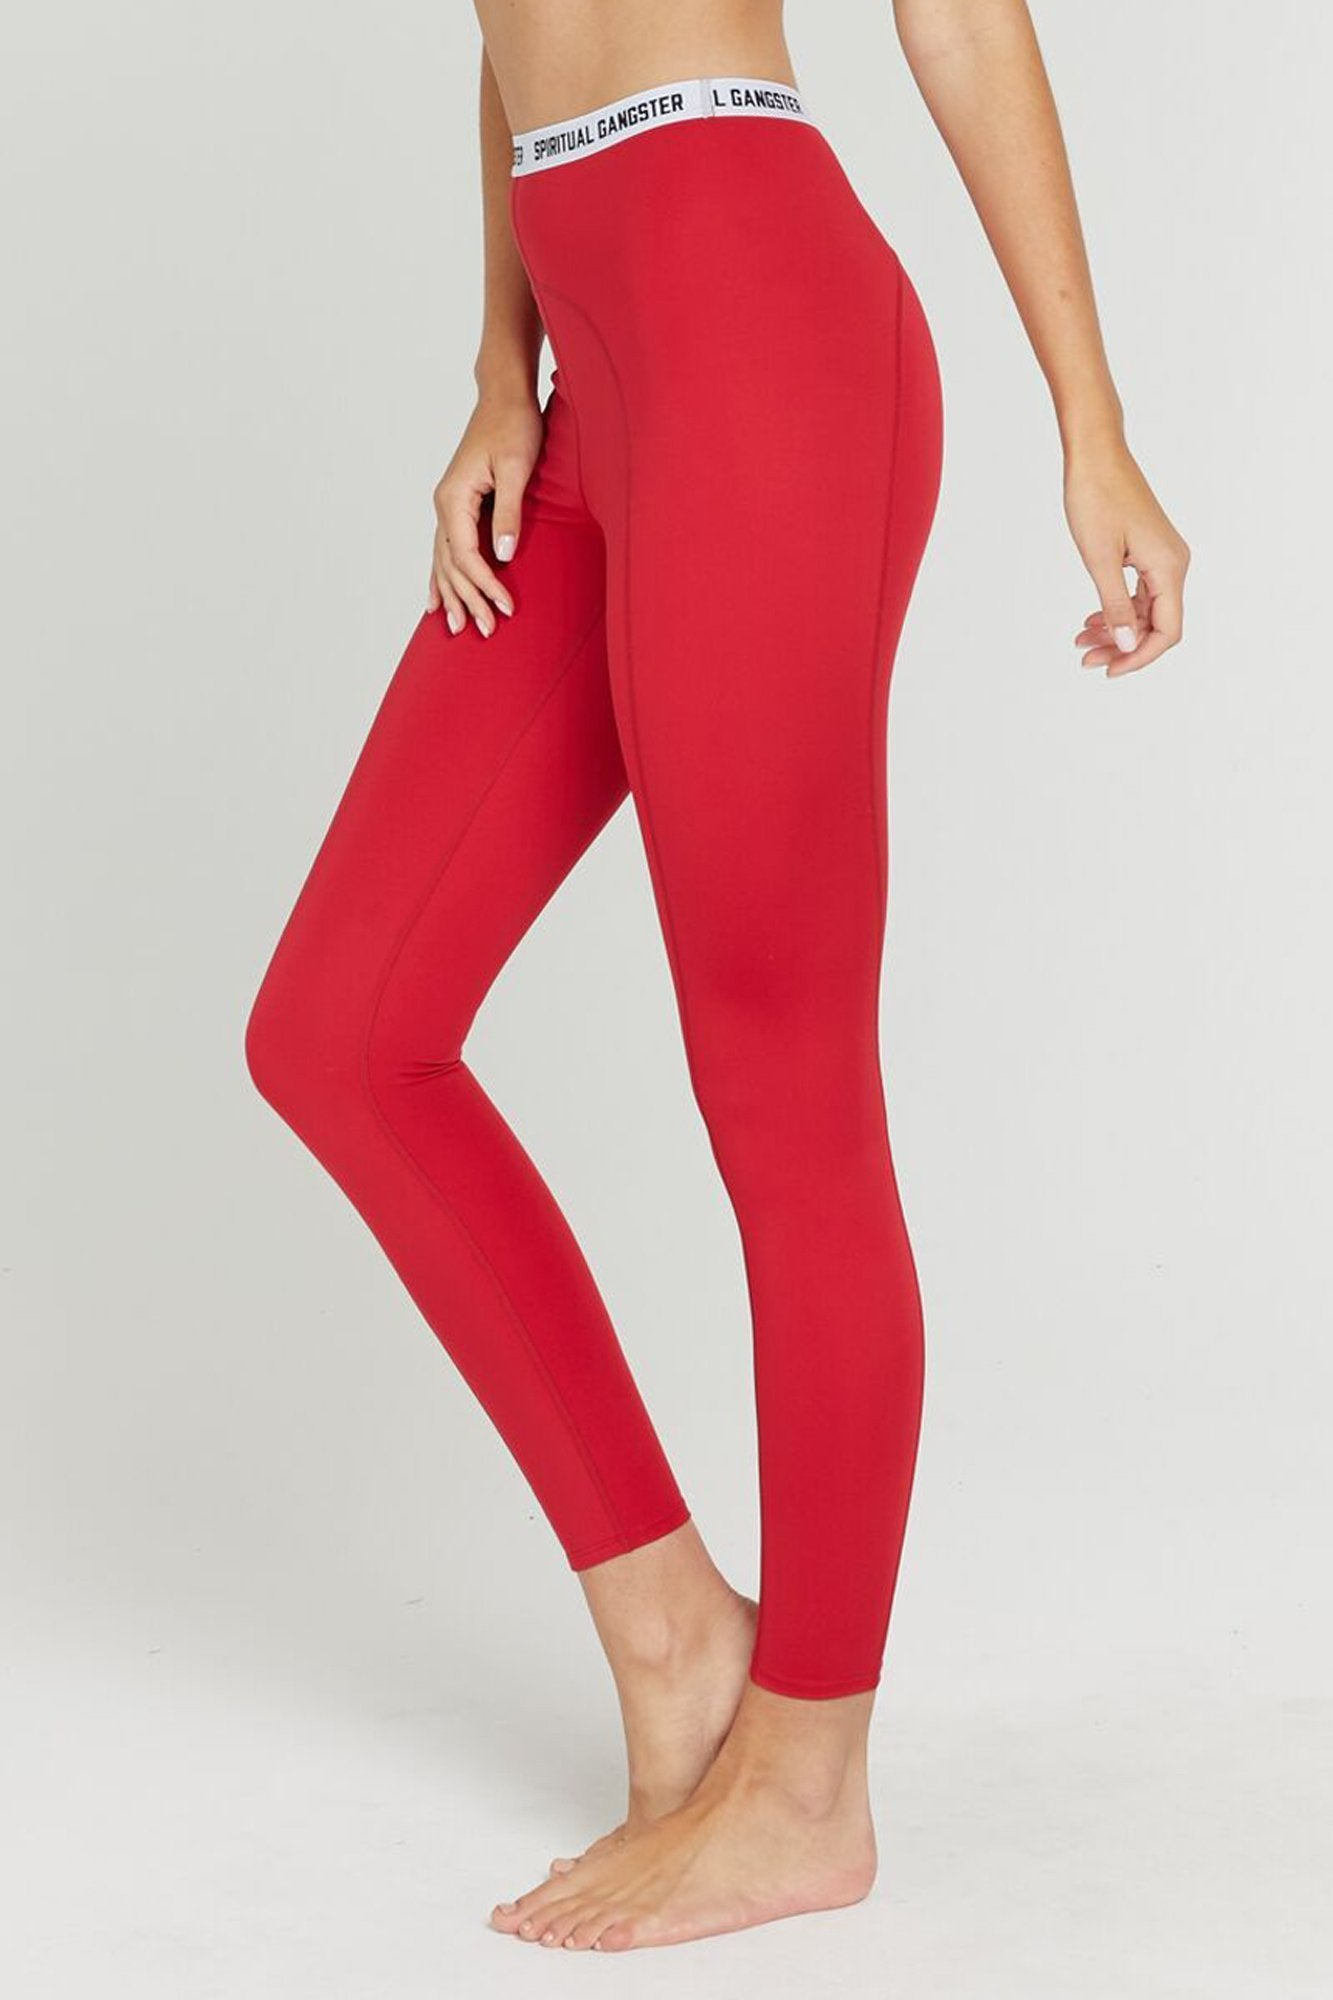 "Model is wearing crimson red, full length spiritual gangster legging. The says active tight in crimson comes with white slim band around the high-waist that reads ""spiritual gangster""."